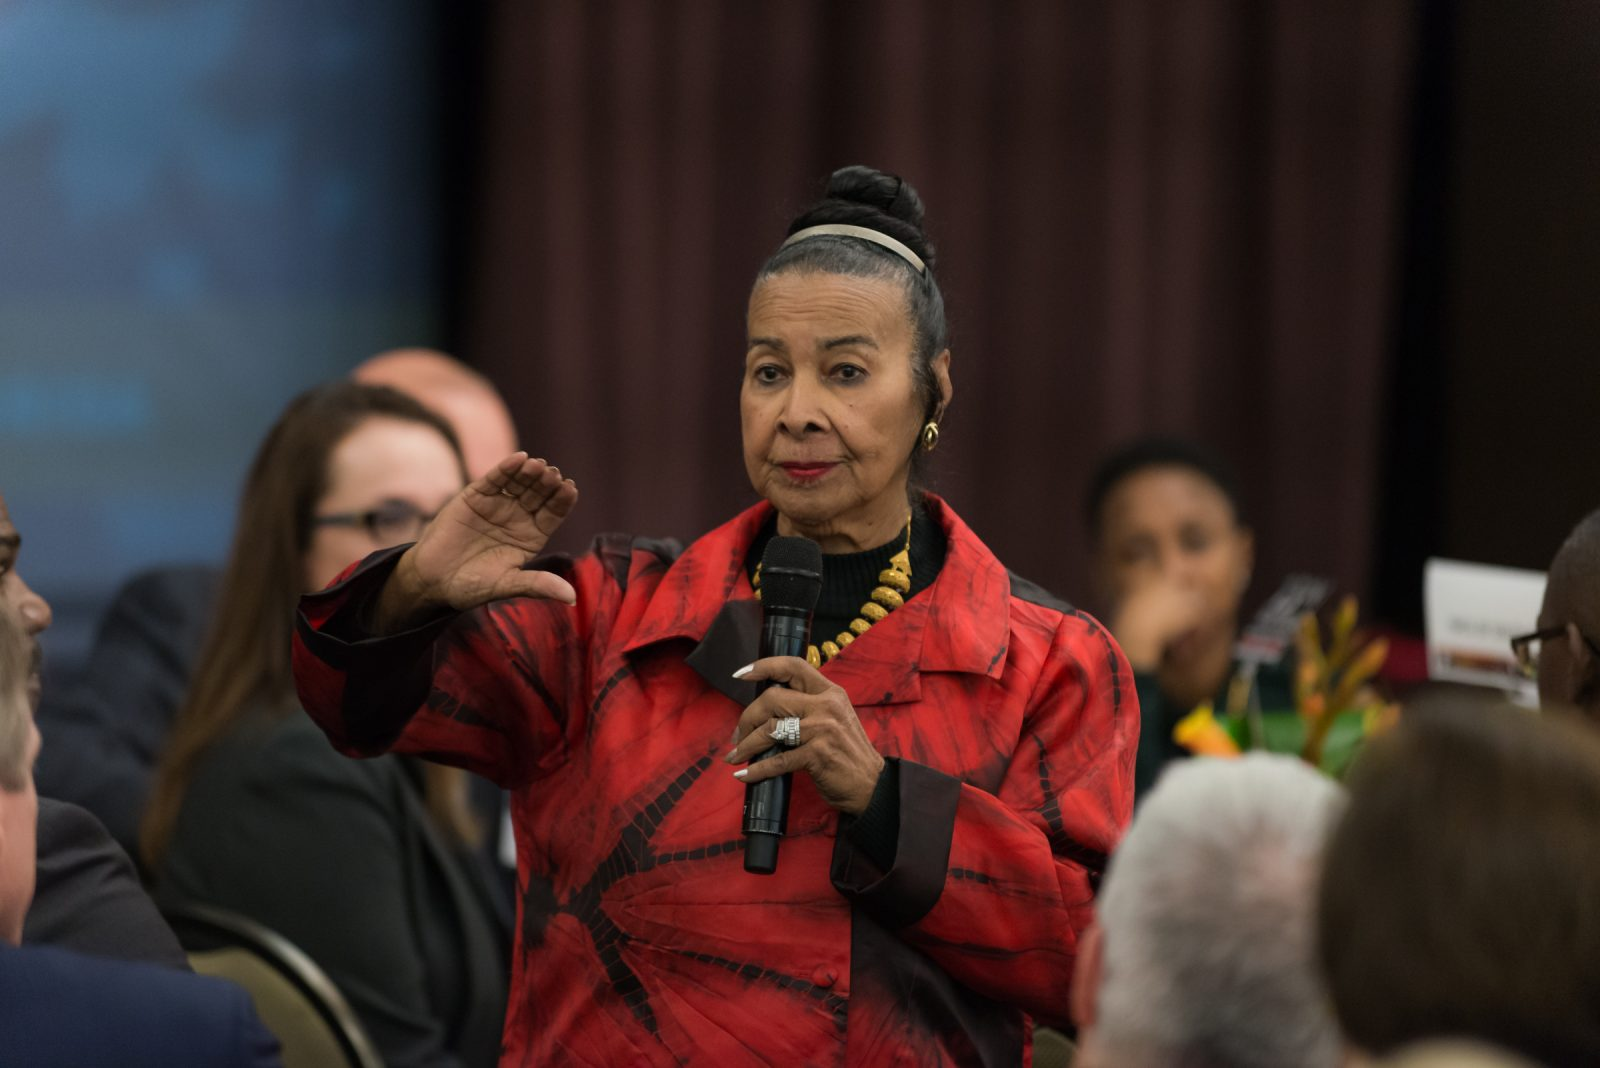 YMCA LAUNCHES 2019 MARTIN LUTHER KING JR. INSPIRATIONAL WEEKEND  ACTIVITIES WITH BROADCAST TRAILBLAZER XERNONA CLAYTON